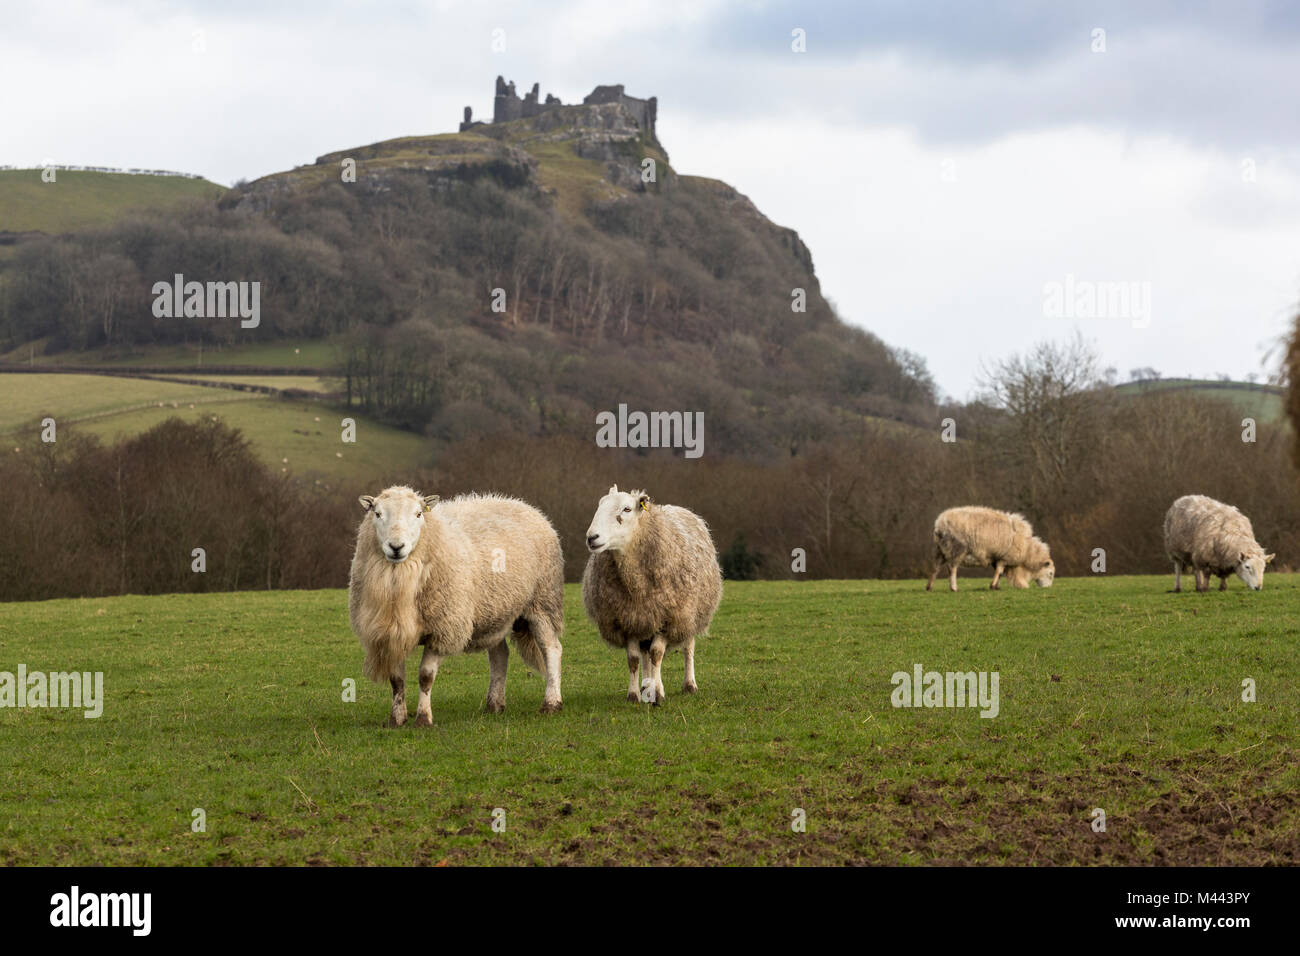 Sheep graze in field below the ruins of medieval Cerreg Cennen Castle, Trapp, Carmarthenshire, Wales - Stock Image